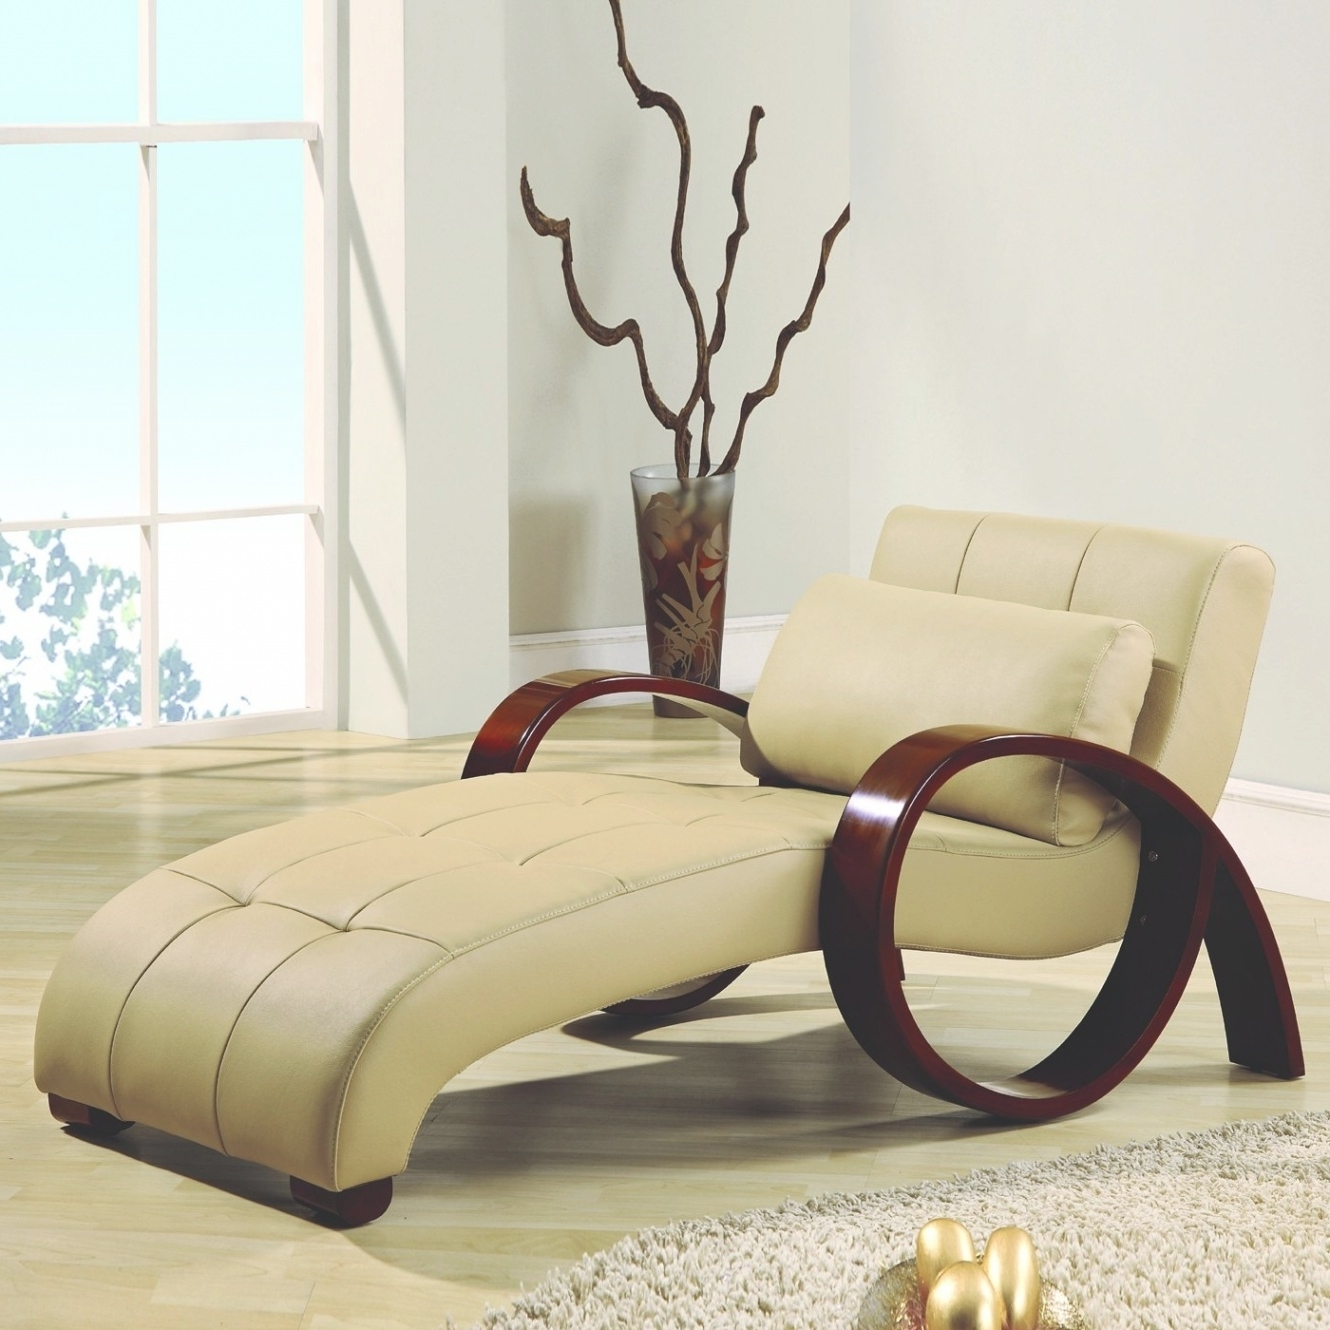 Most Recently Released Unique Indoor Chaise Lounge Chairs Pertaining To Contemporary Chaise Lounge Chairs Indoor Unique Wood Arms Solid (View 9 of 15)